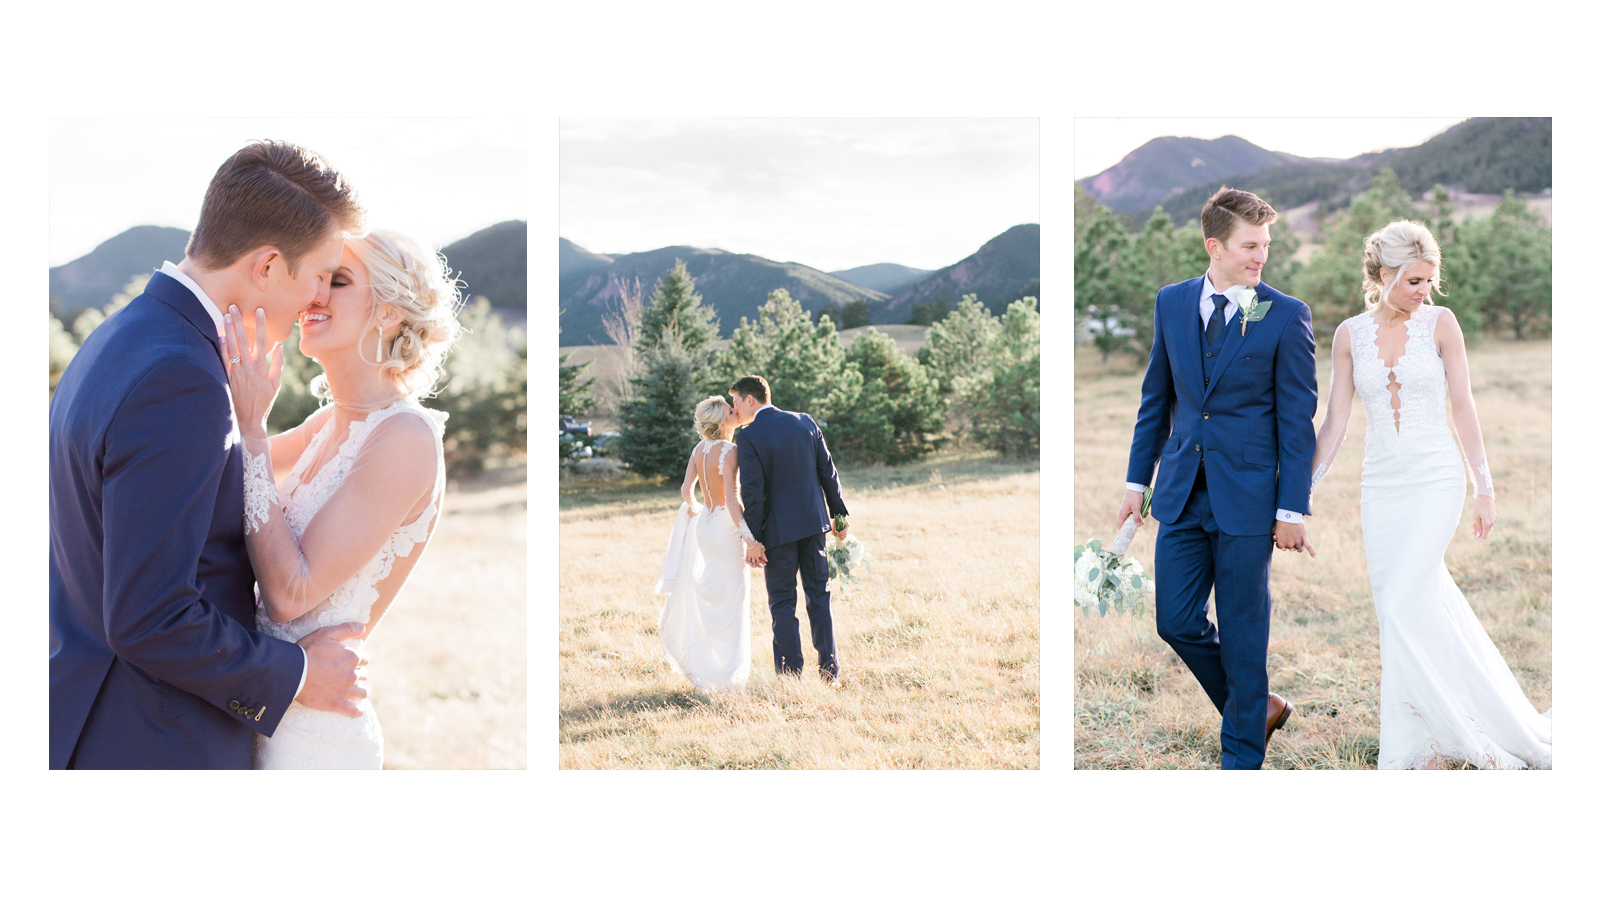 Spruce Mountain Ranch Wedding Photographer Michele with one L Photography